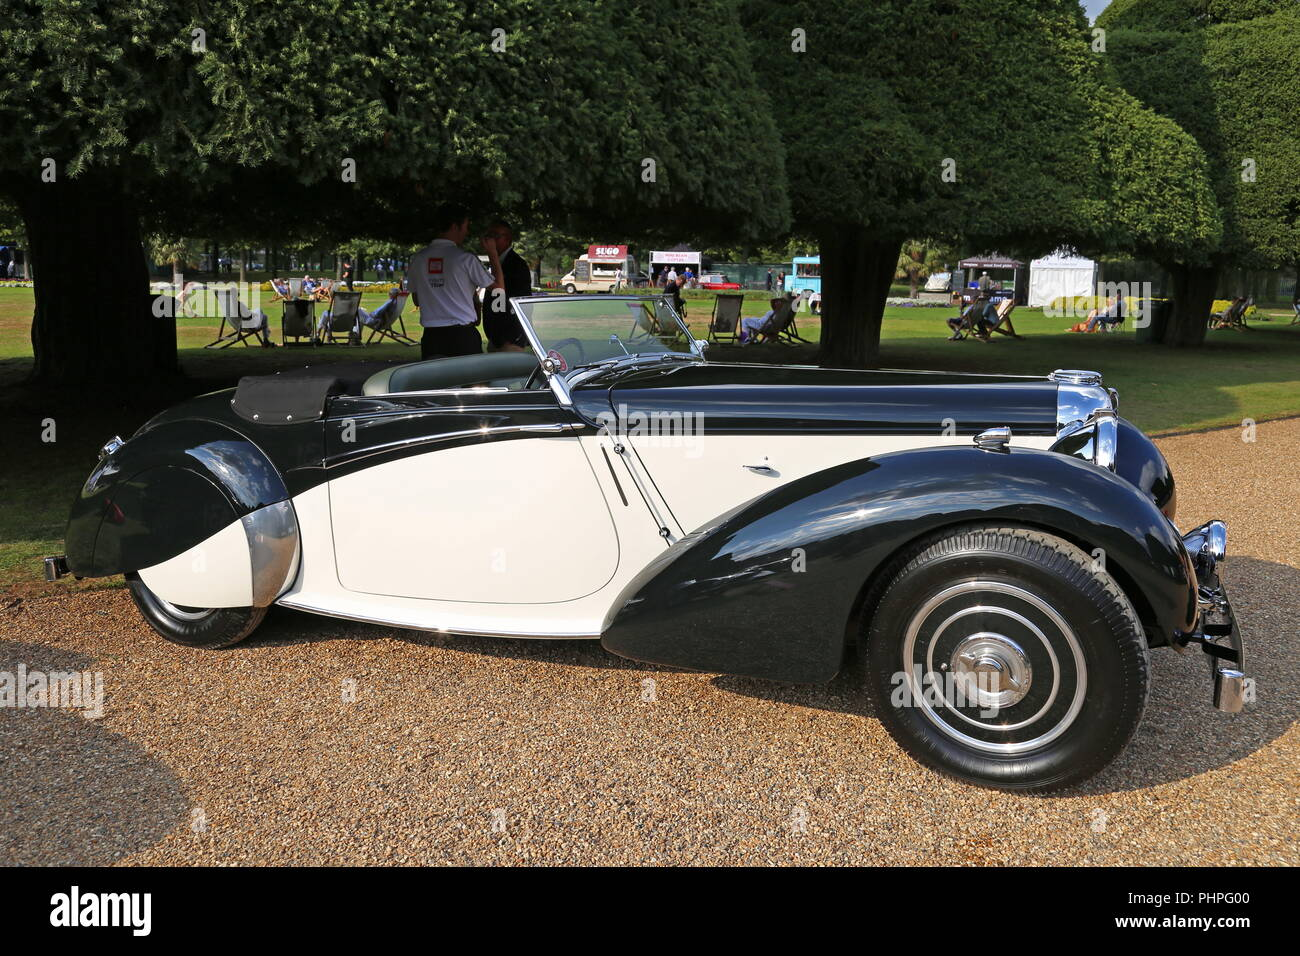 Lagonda V-12 Rapide Coupé (1938), Concours of Elegance 2018 (Preview Day), 31 August 2018. Hampton Court Palace, London, UK, Europe - Stock Image